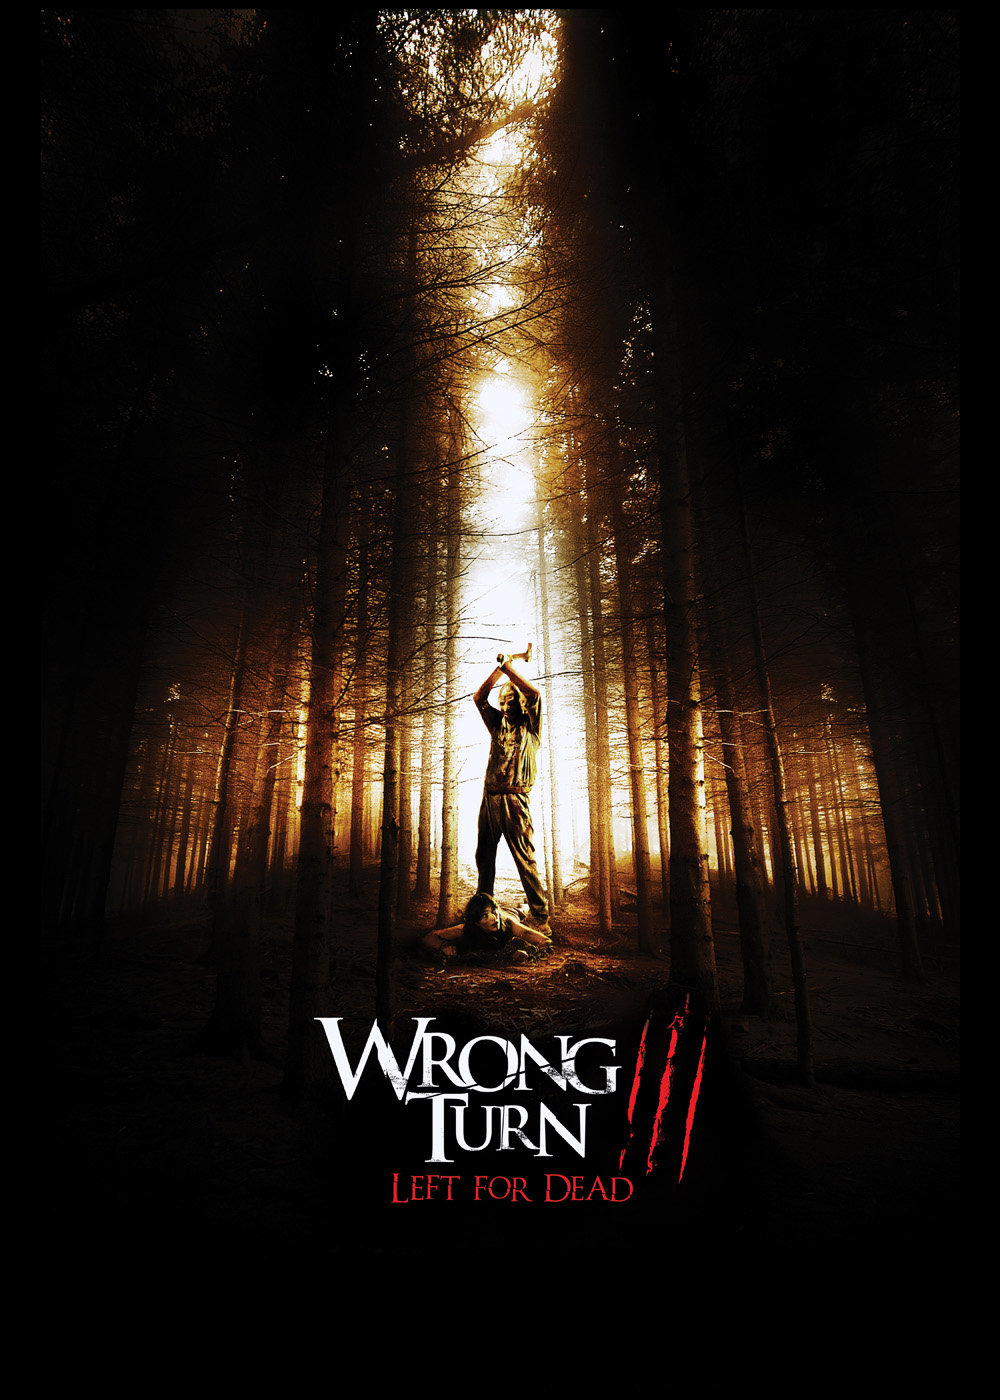 致命弯道3 Wrong Turn 3: Left for Dead